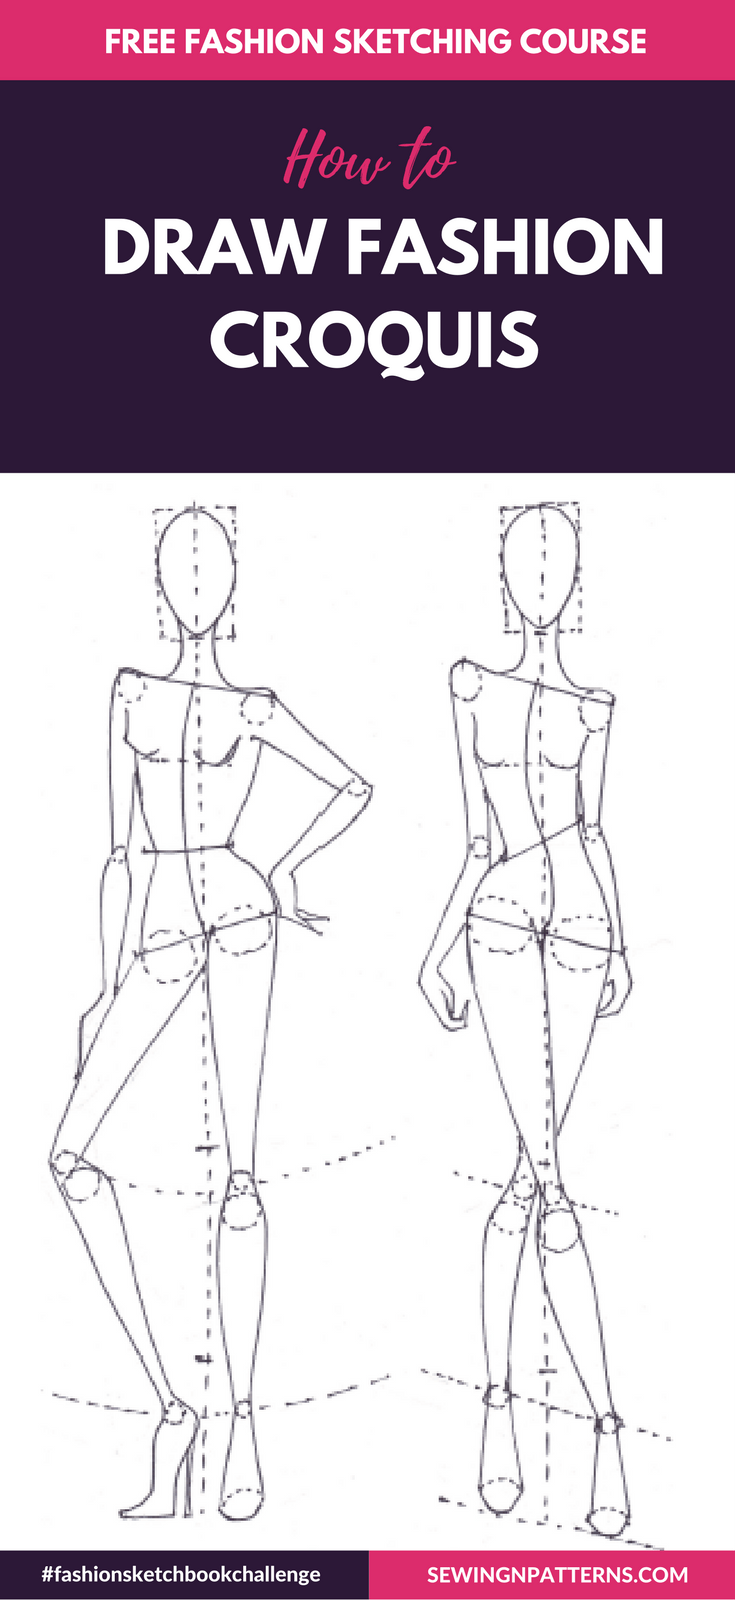 Fashion Sketchboook Challenge New - sewingnpatterns